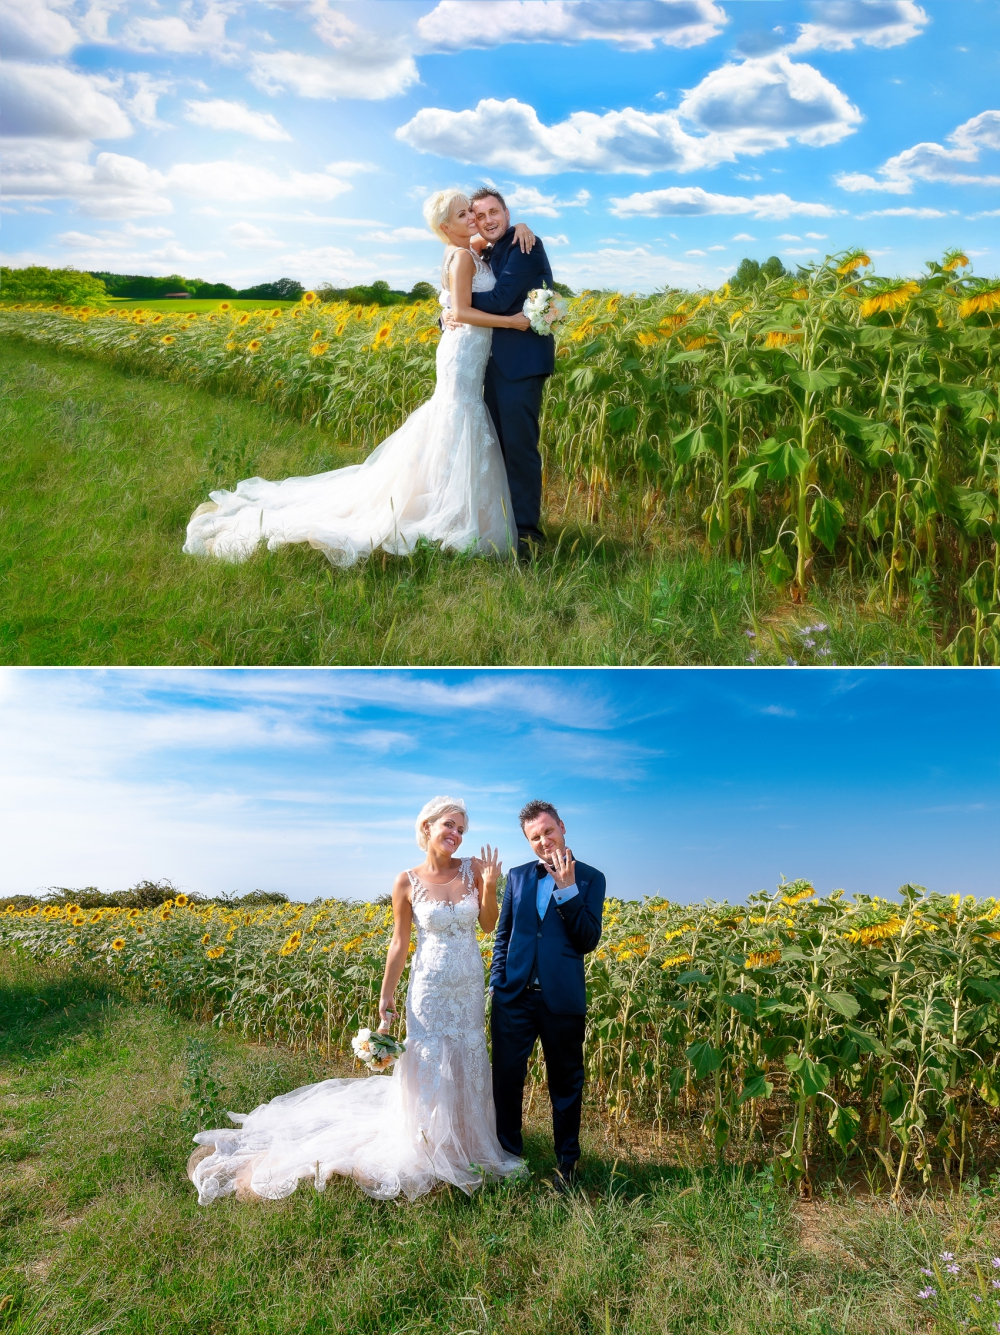 tagg-photography-wedding-miky-charlie-14